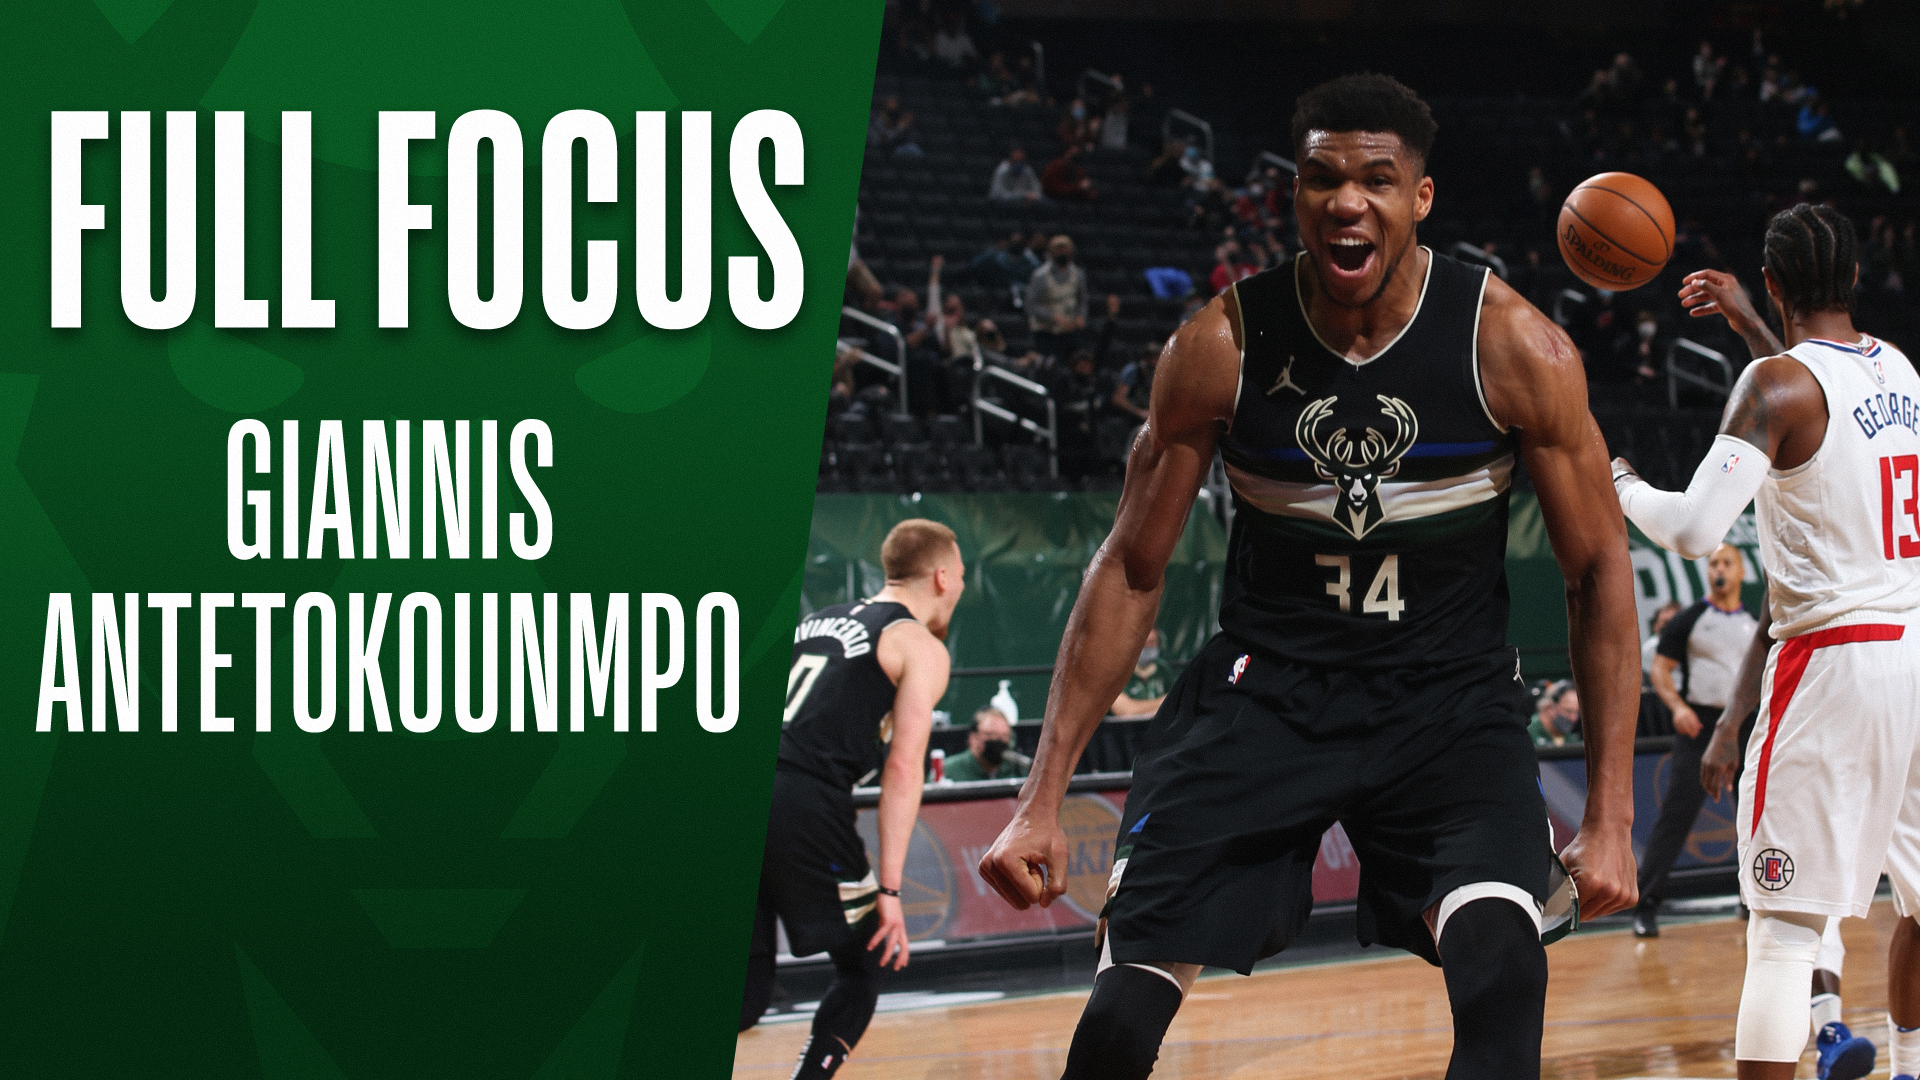 Full Focus: Giannis unleashes his might, topples Clippers